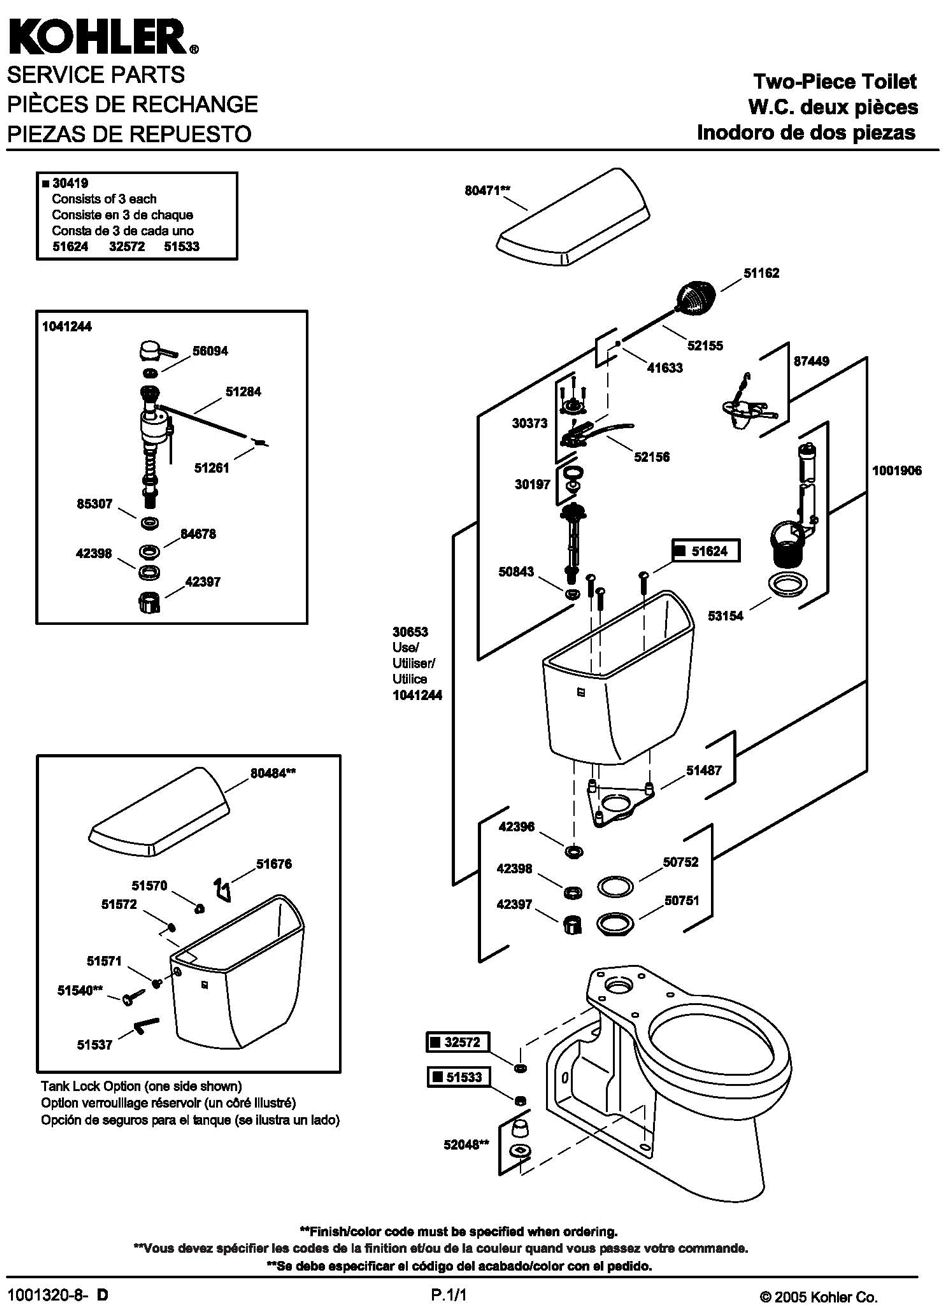 ToiletPro.com Parts Breakdown For Kohler 4519 Toilet